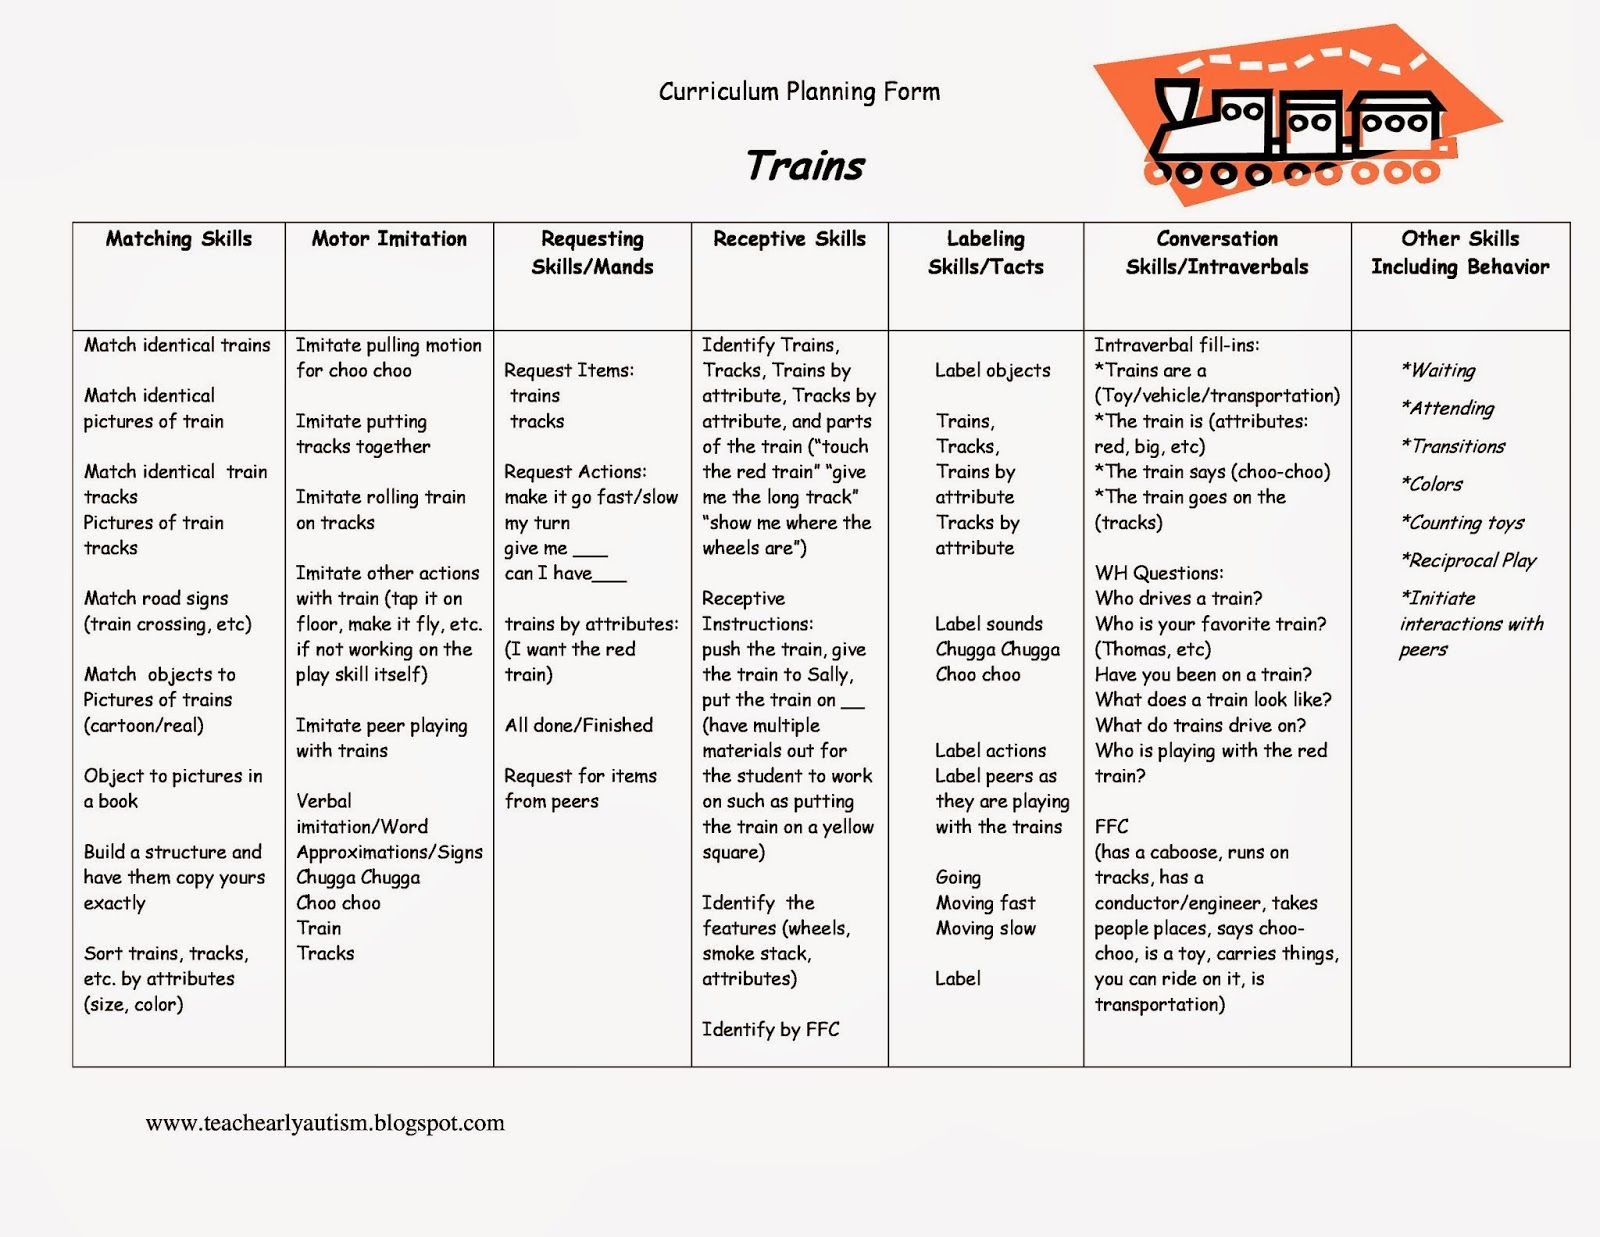 Teach Early Autism Skill Building Cheat Sheet For Trains